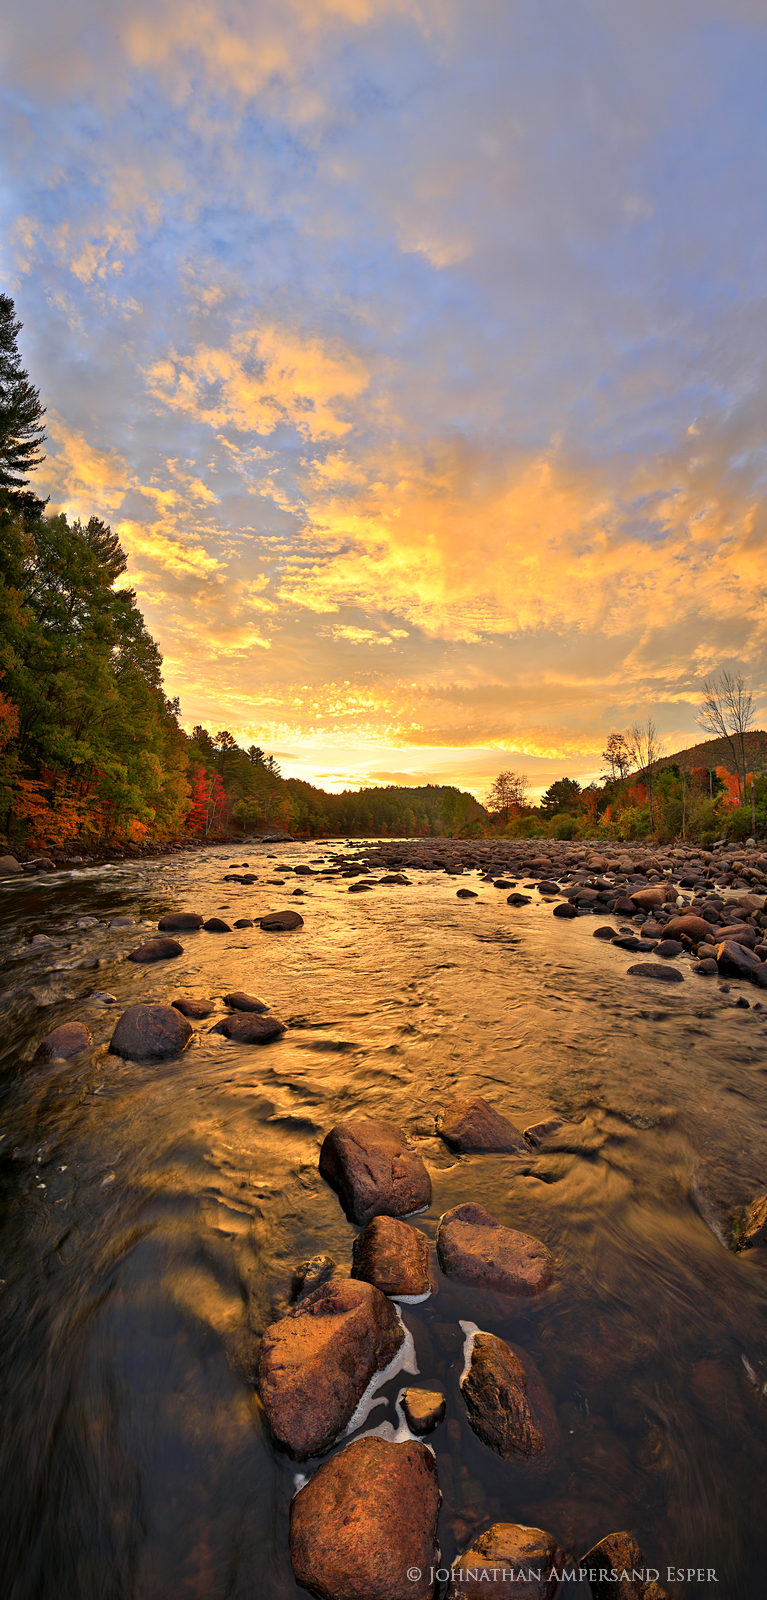 North River,Hudson River,vertical panorama,riverbed,rocks,river,sunrise,brilliant,orange,autumn, photo